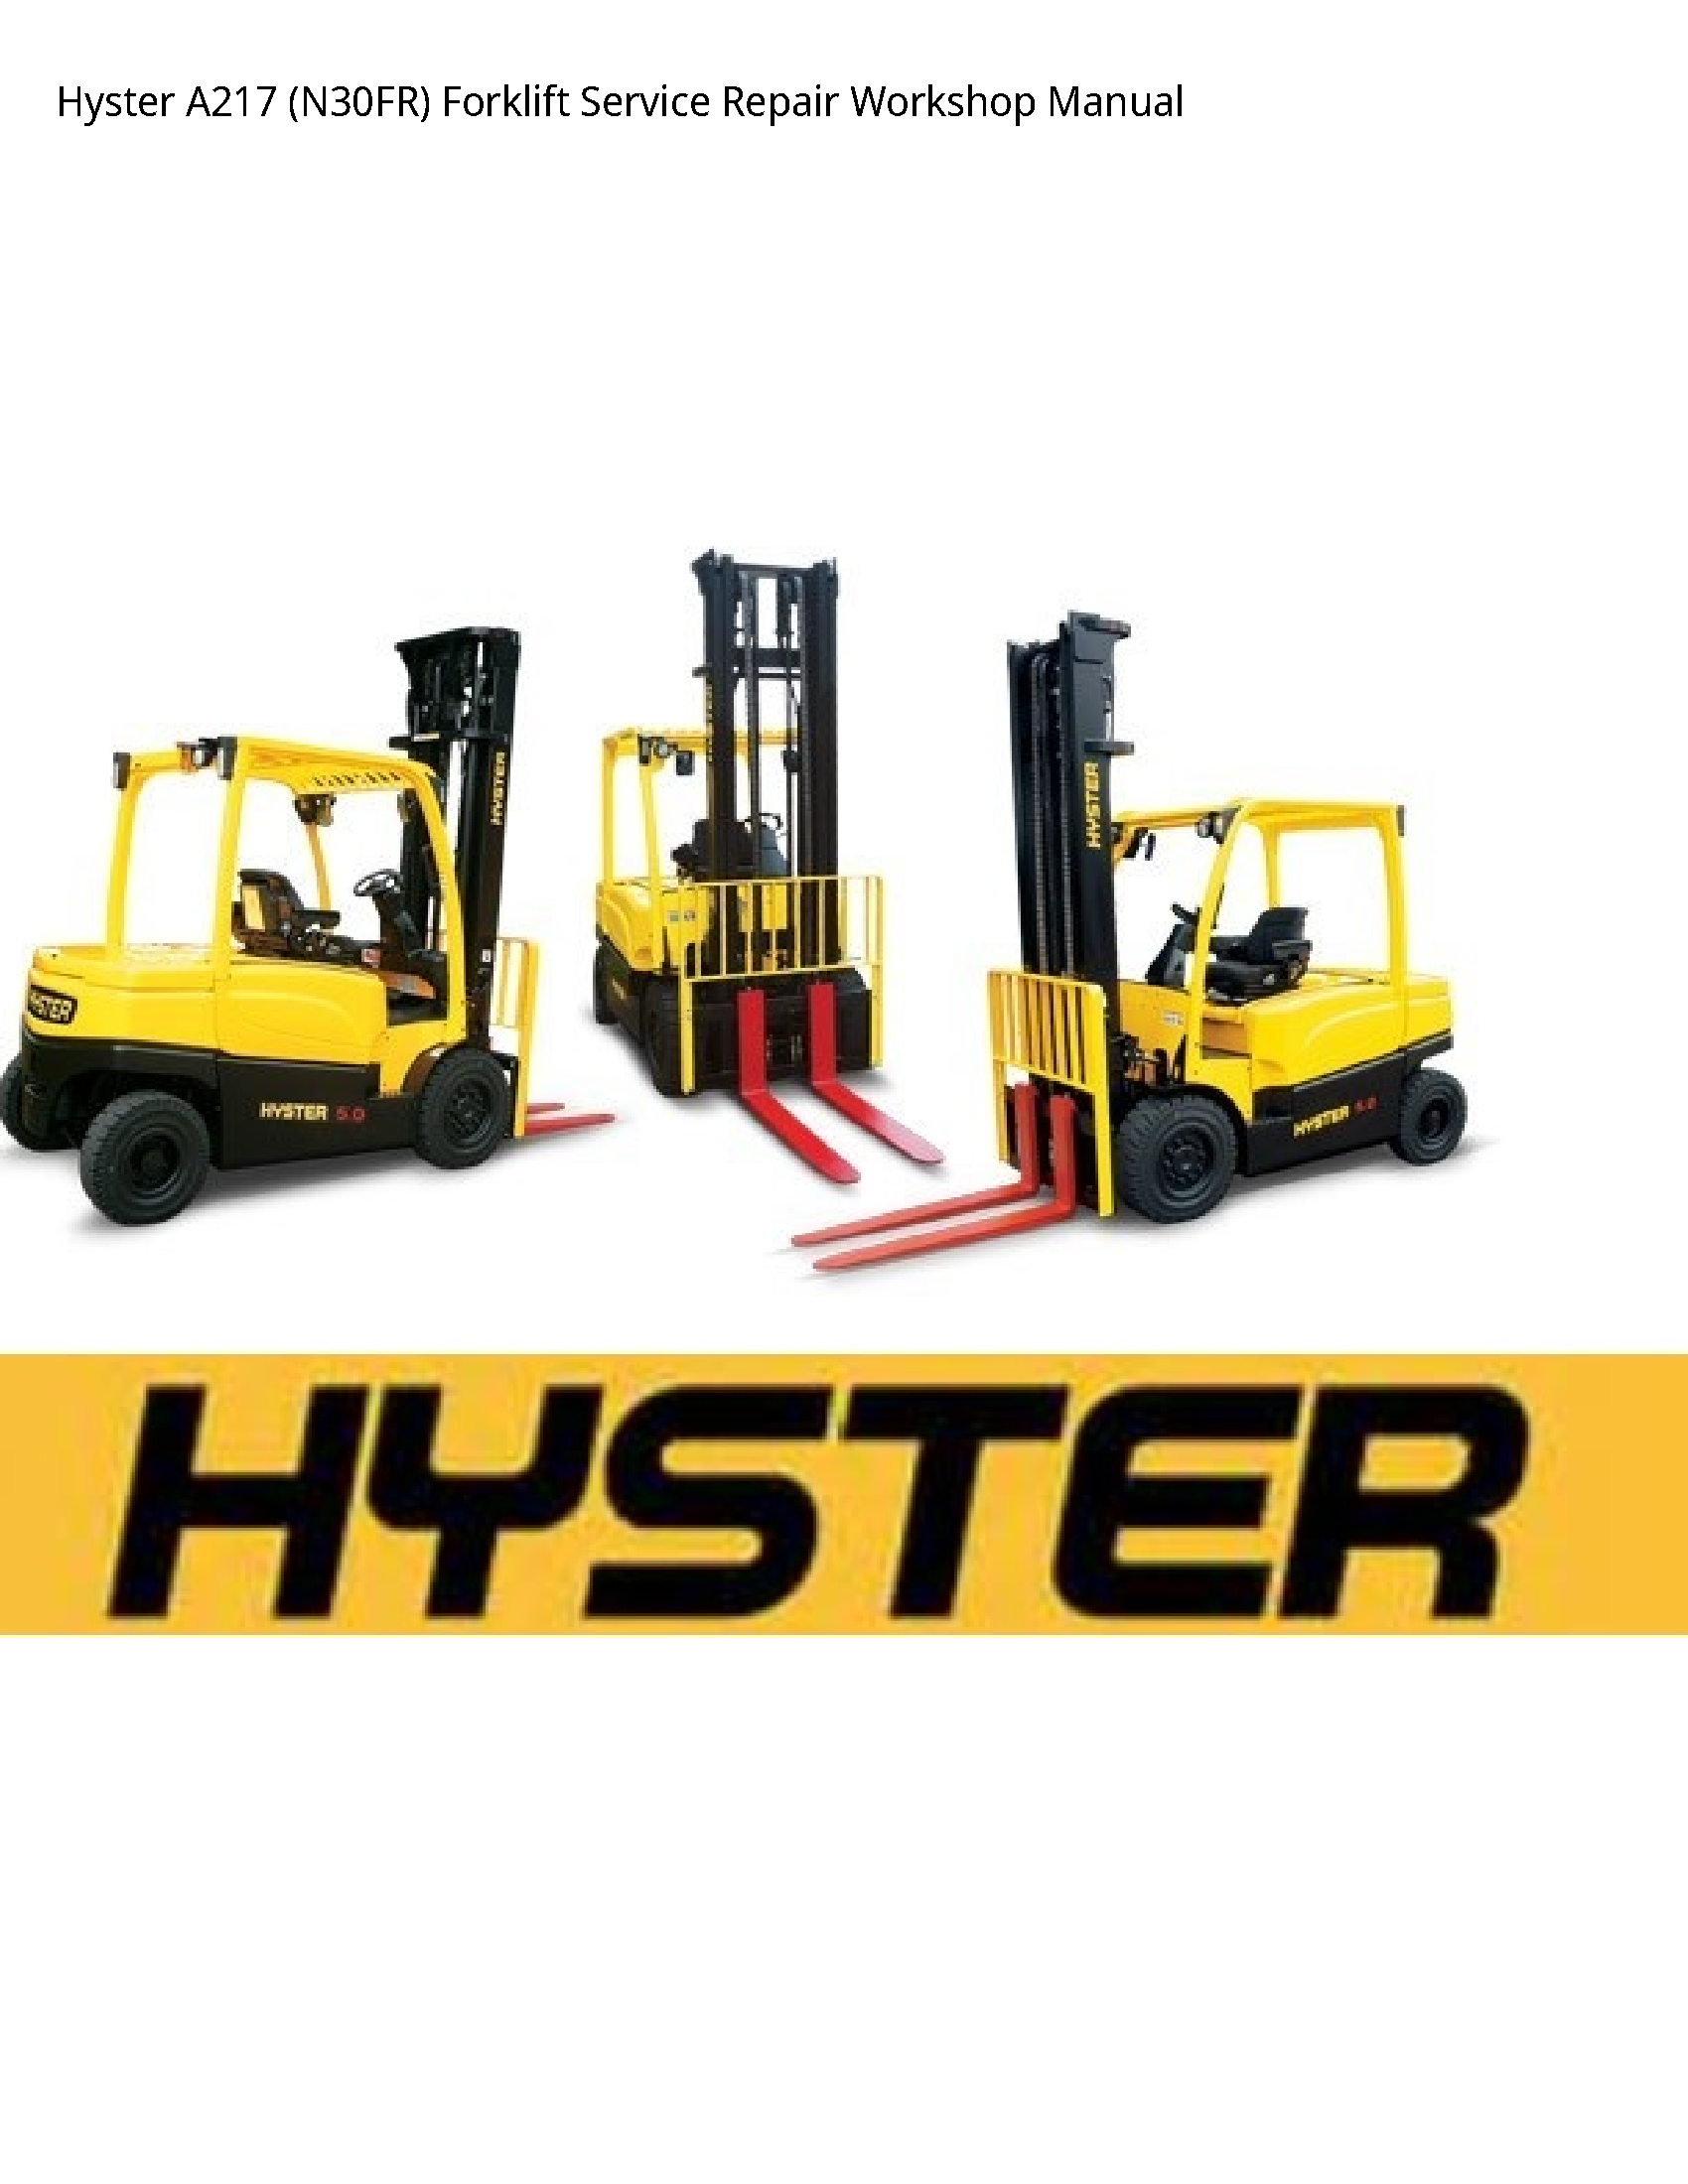 Hyster A217 Forklift manual